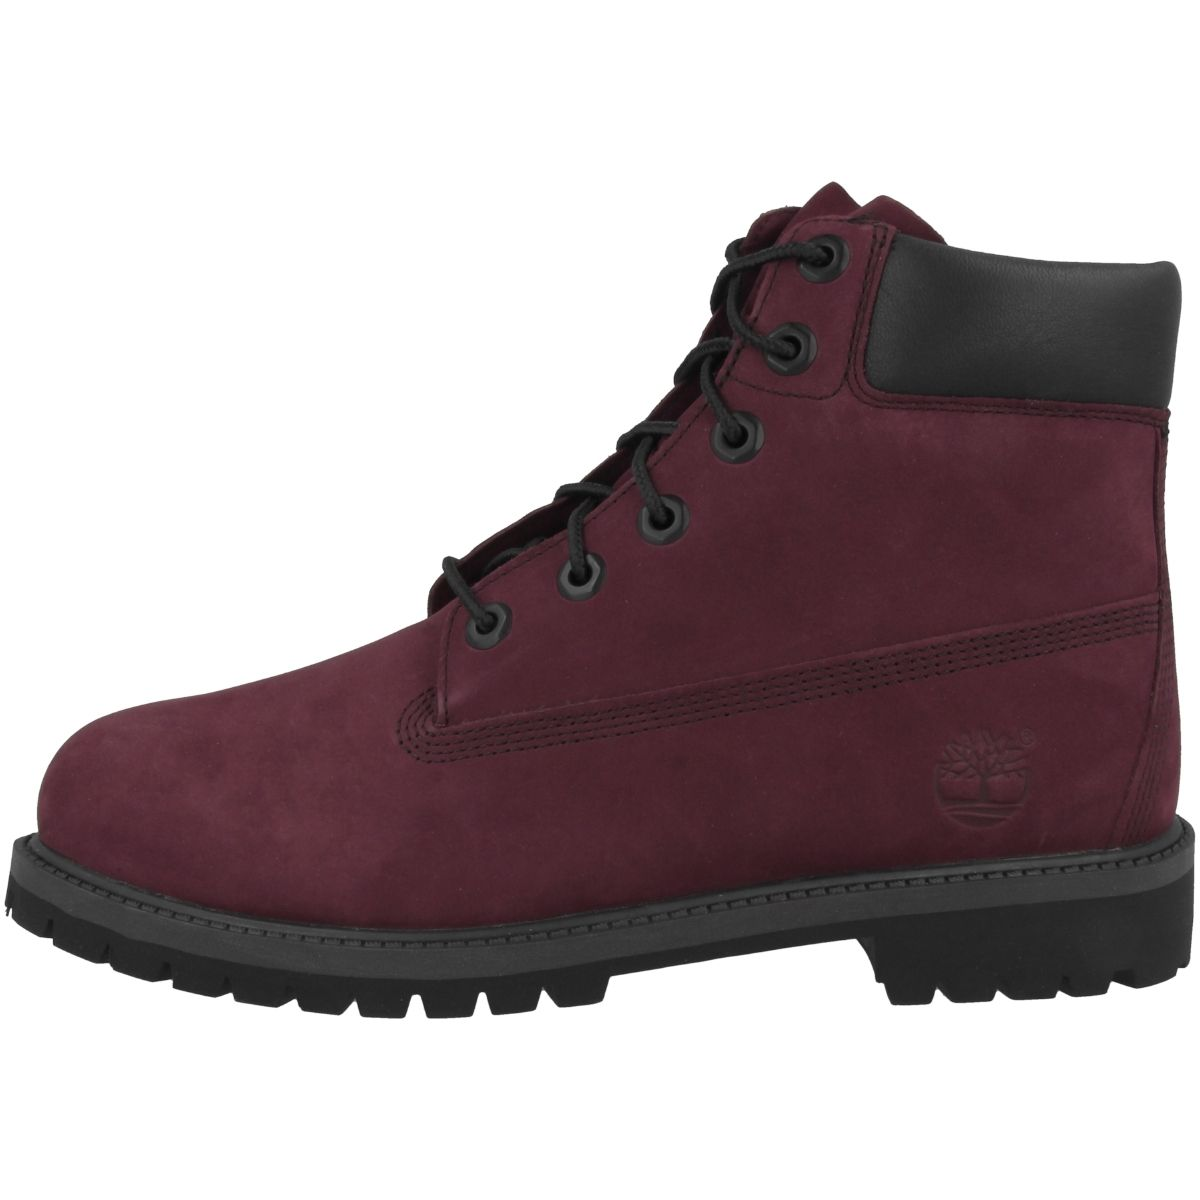 TIMBERLAND 6 INCH PREMIUM BOOTS HIGH TOP SCHUHE STIEFEL